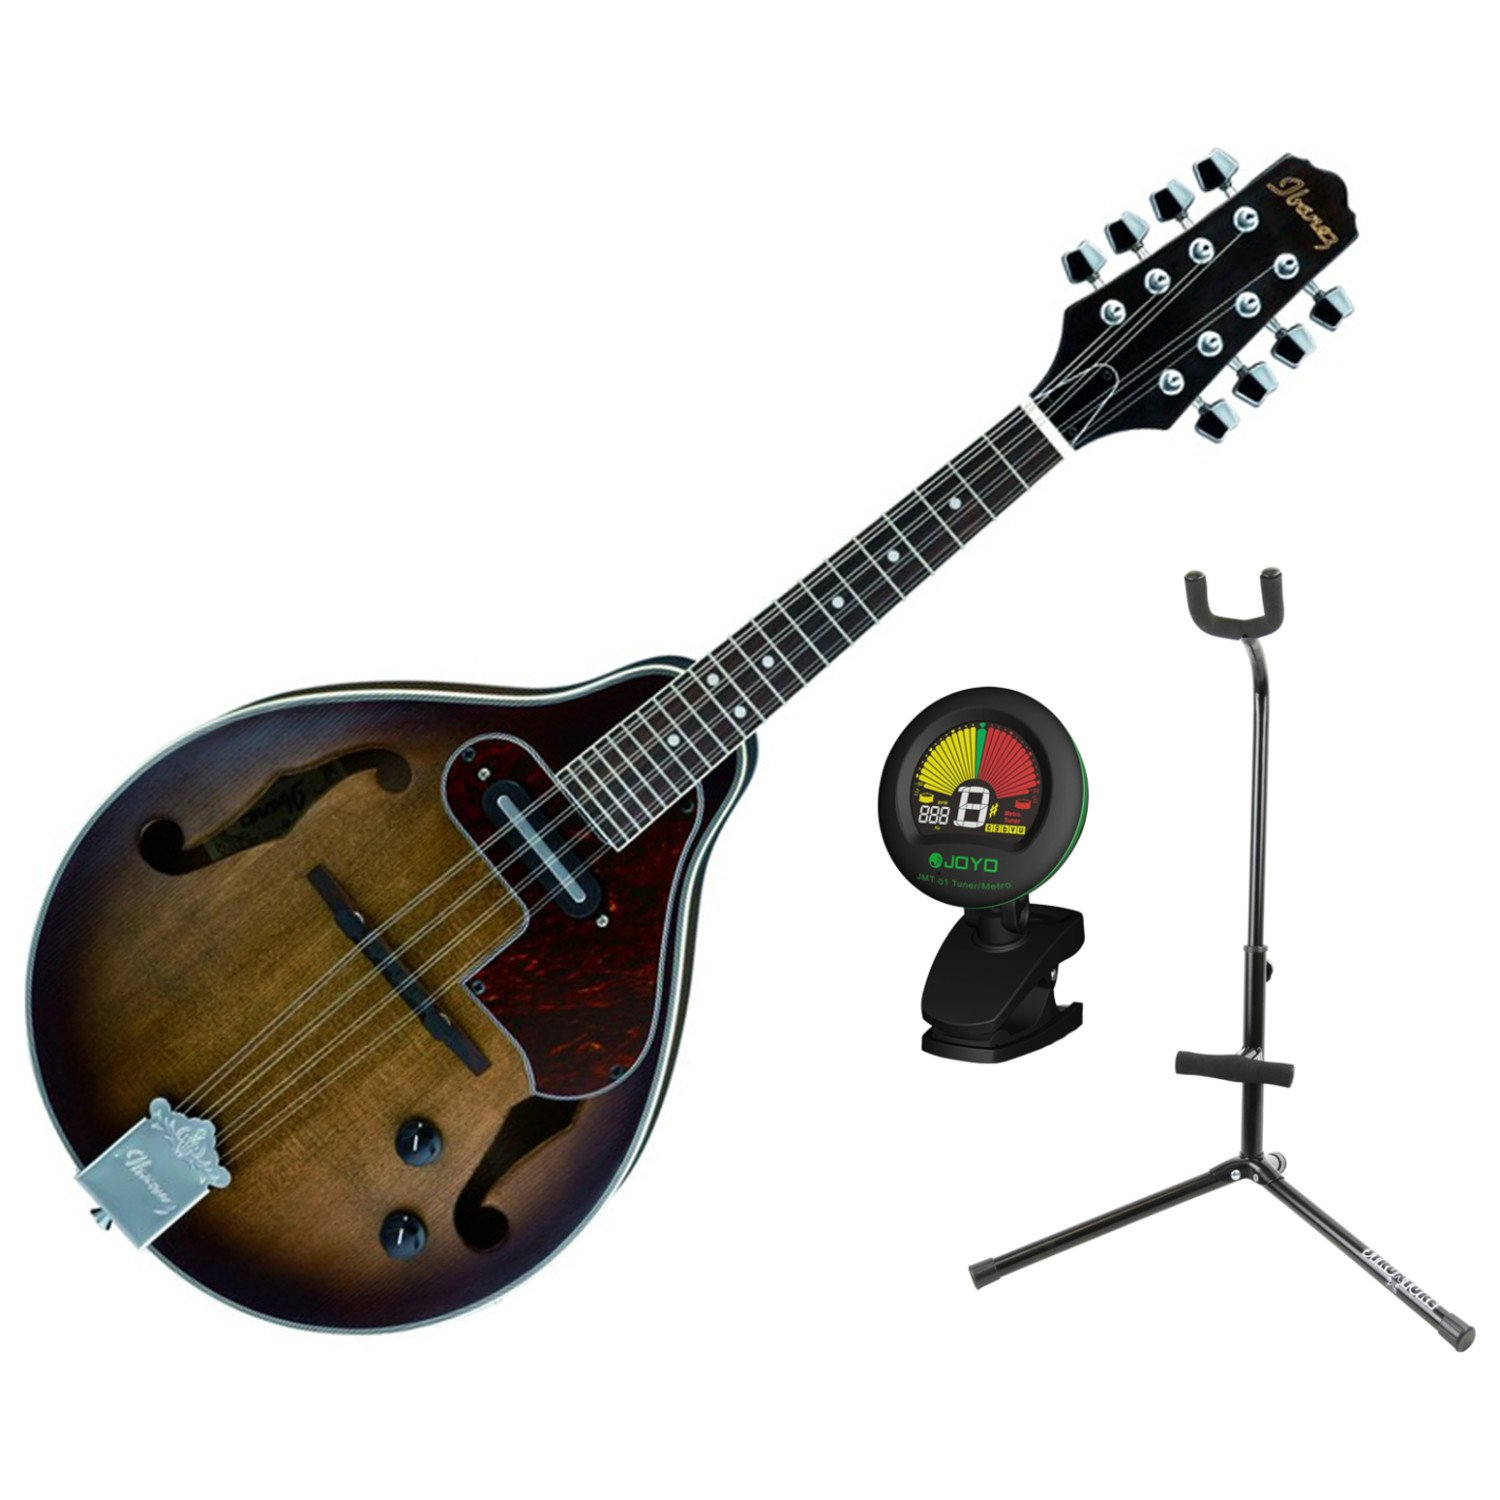 Ibanez M510EOVS A Style Acoustic Electric Mandolin Open Pore Vintage Sunburst Finish w/ Stand and Tuner